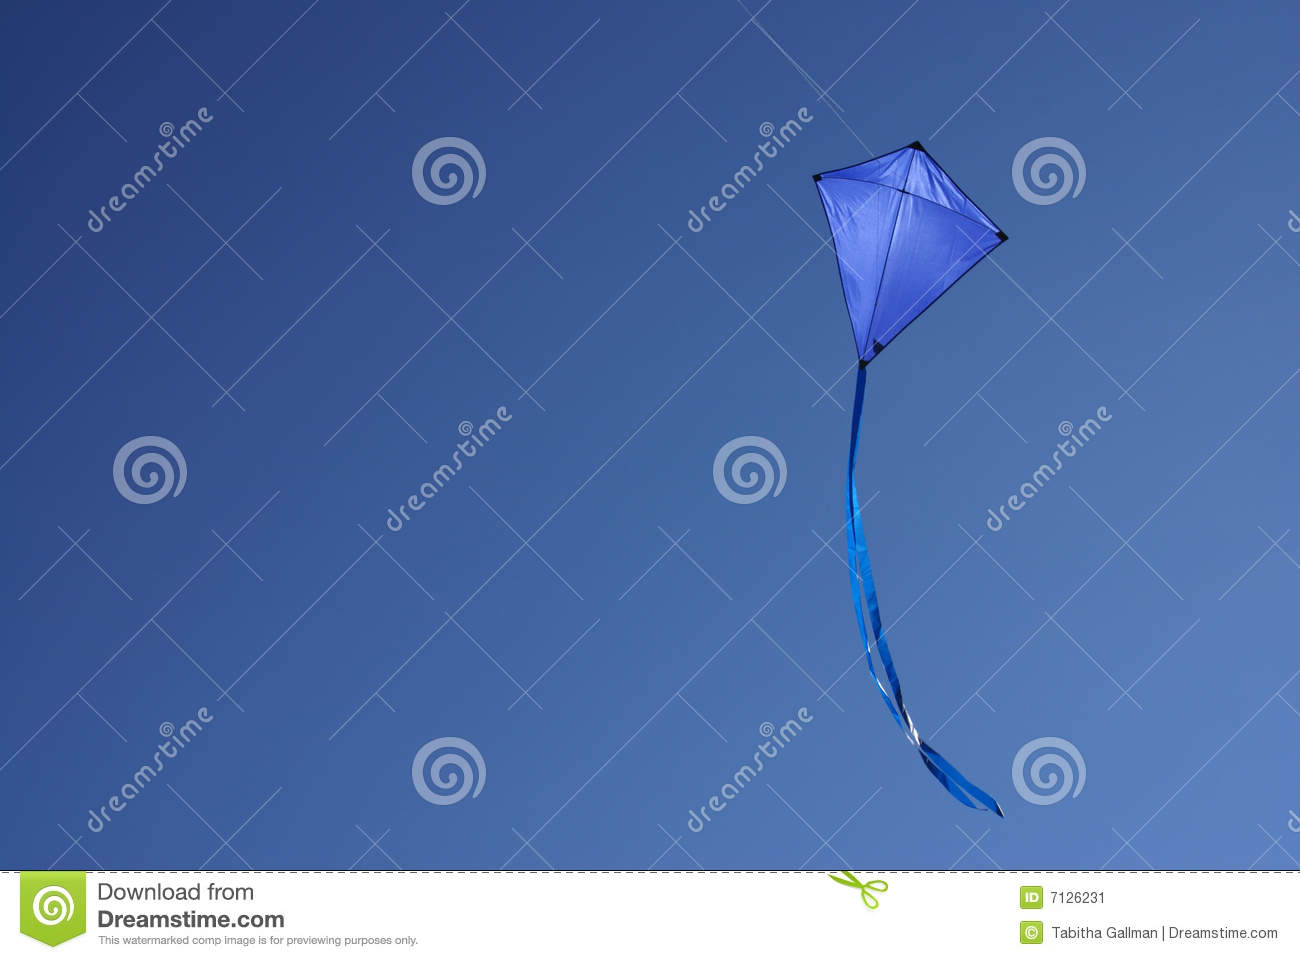 Blue Kite In Clear Blue Sky